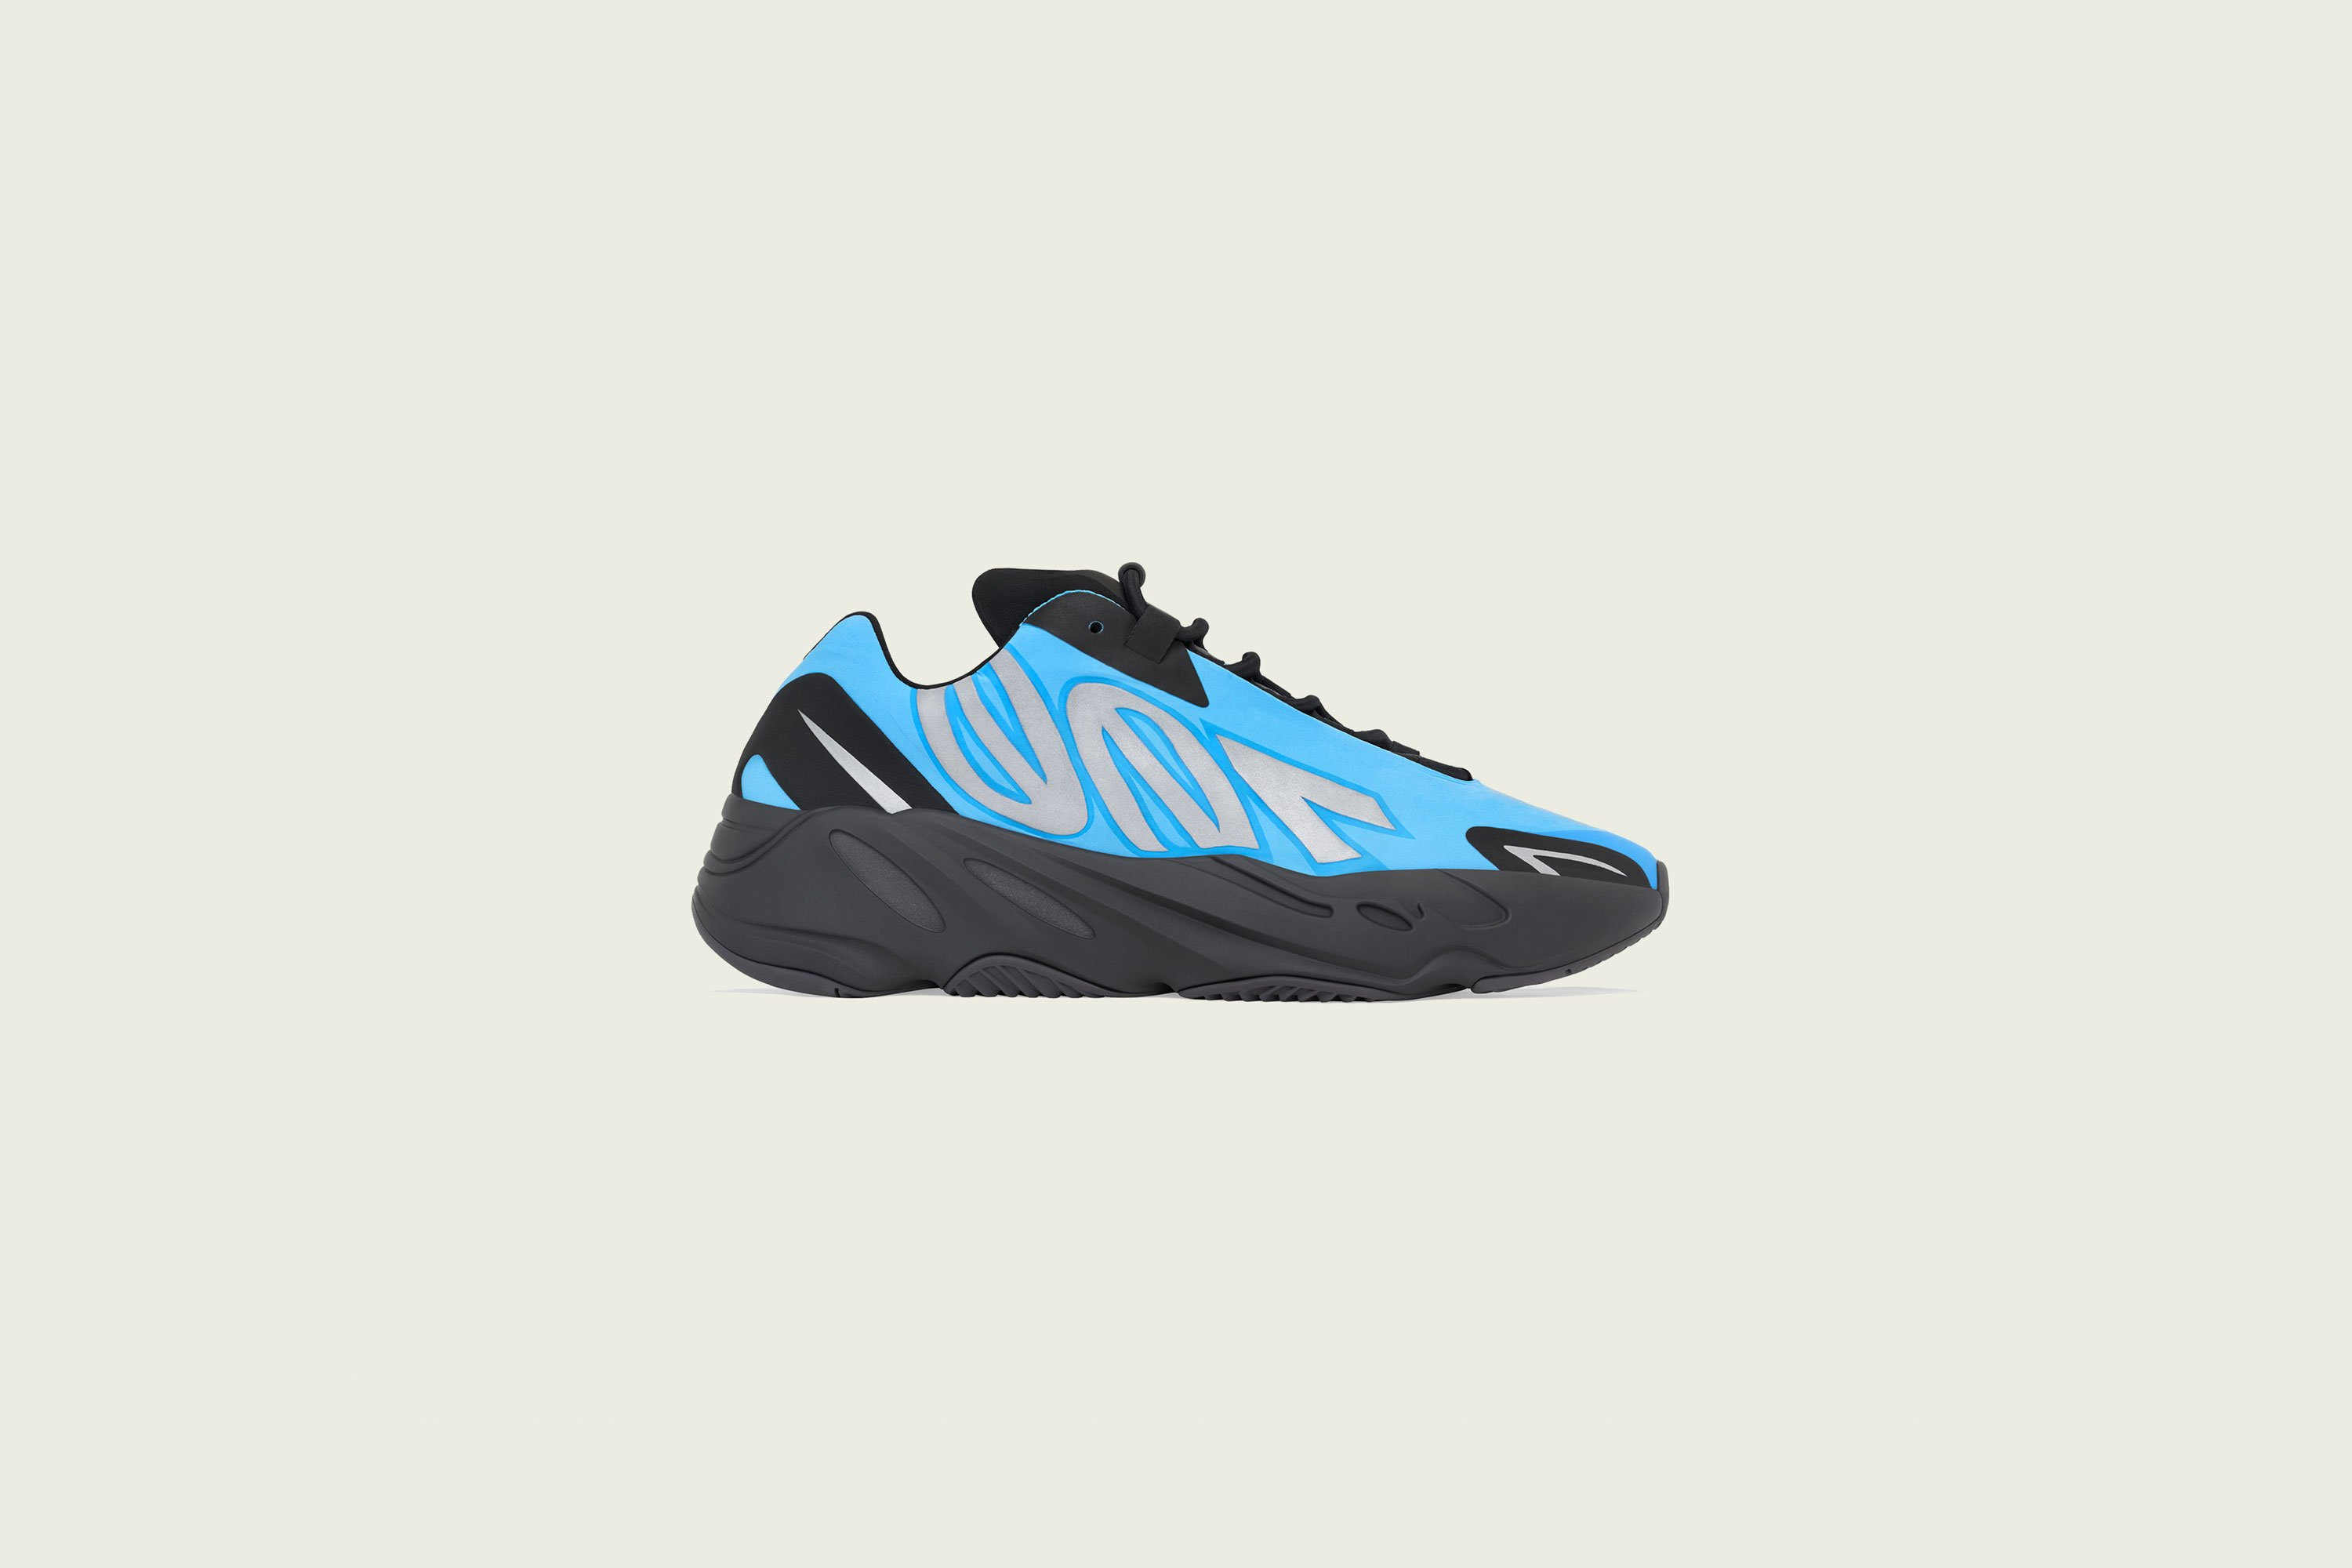 adidas - Yeezy Boost 700 MNVN - Bright Cyan - Up There